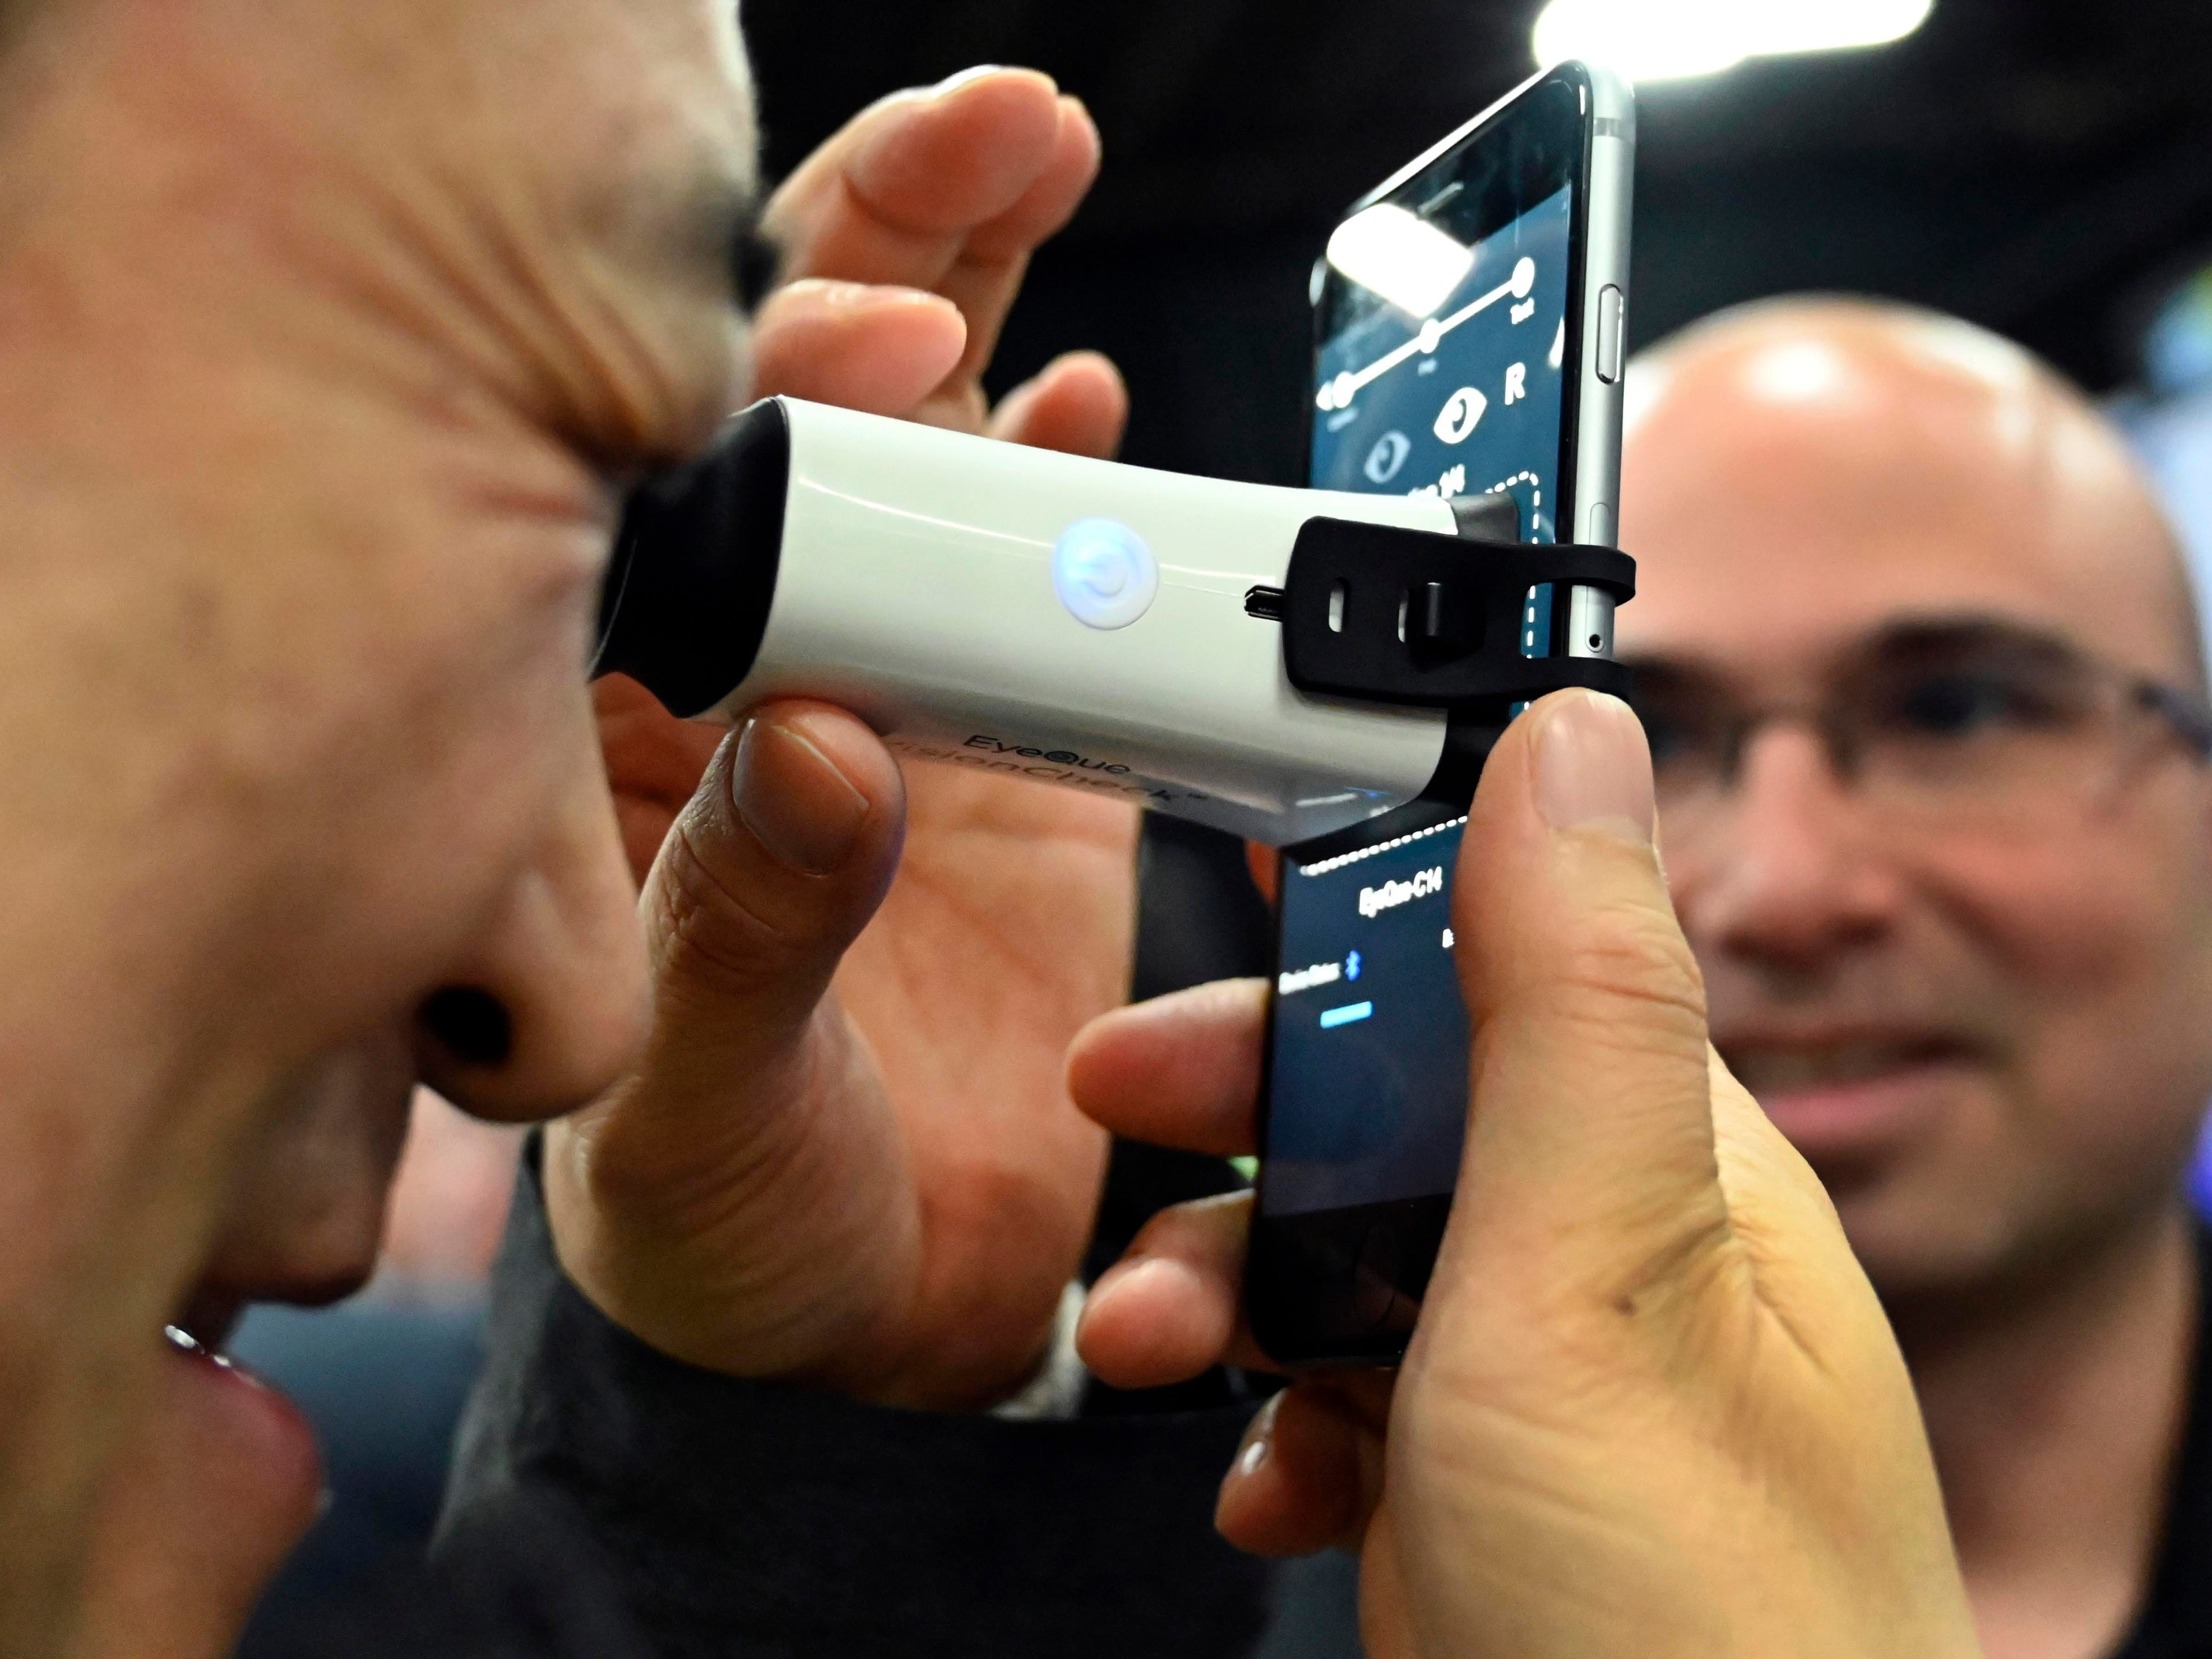 January 6, 2019; Las Vegas, NV, USA;  Norito Shimizu tries the EyeQue VisionCheck an at-home vision test device at CES Unveiled, a media preview event at the Mandalay Bay Convention Center. Right is EyeQue's Dr. Noam Sapiens. Mandatory Credit: Robert Hanashiro- USA TODAY NETWORK ORIG FILE ID:  20190106_ajw_usa_979.jpg